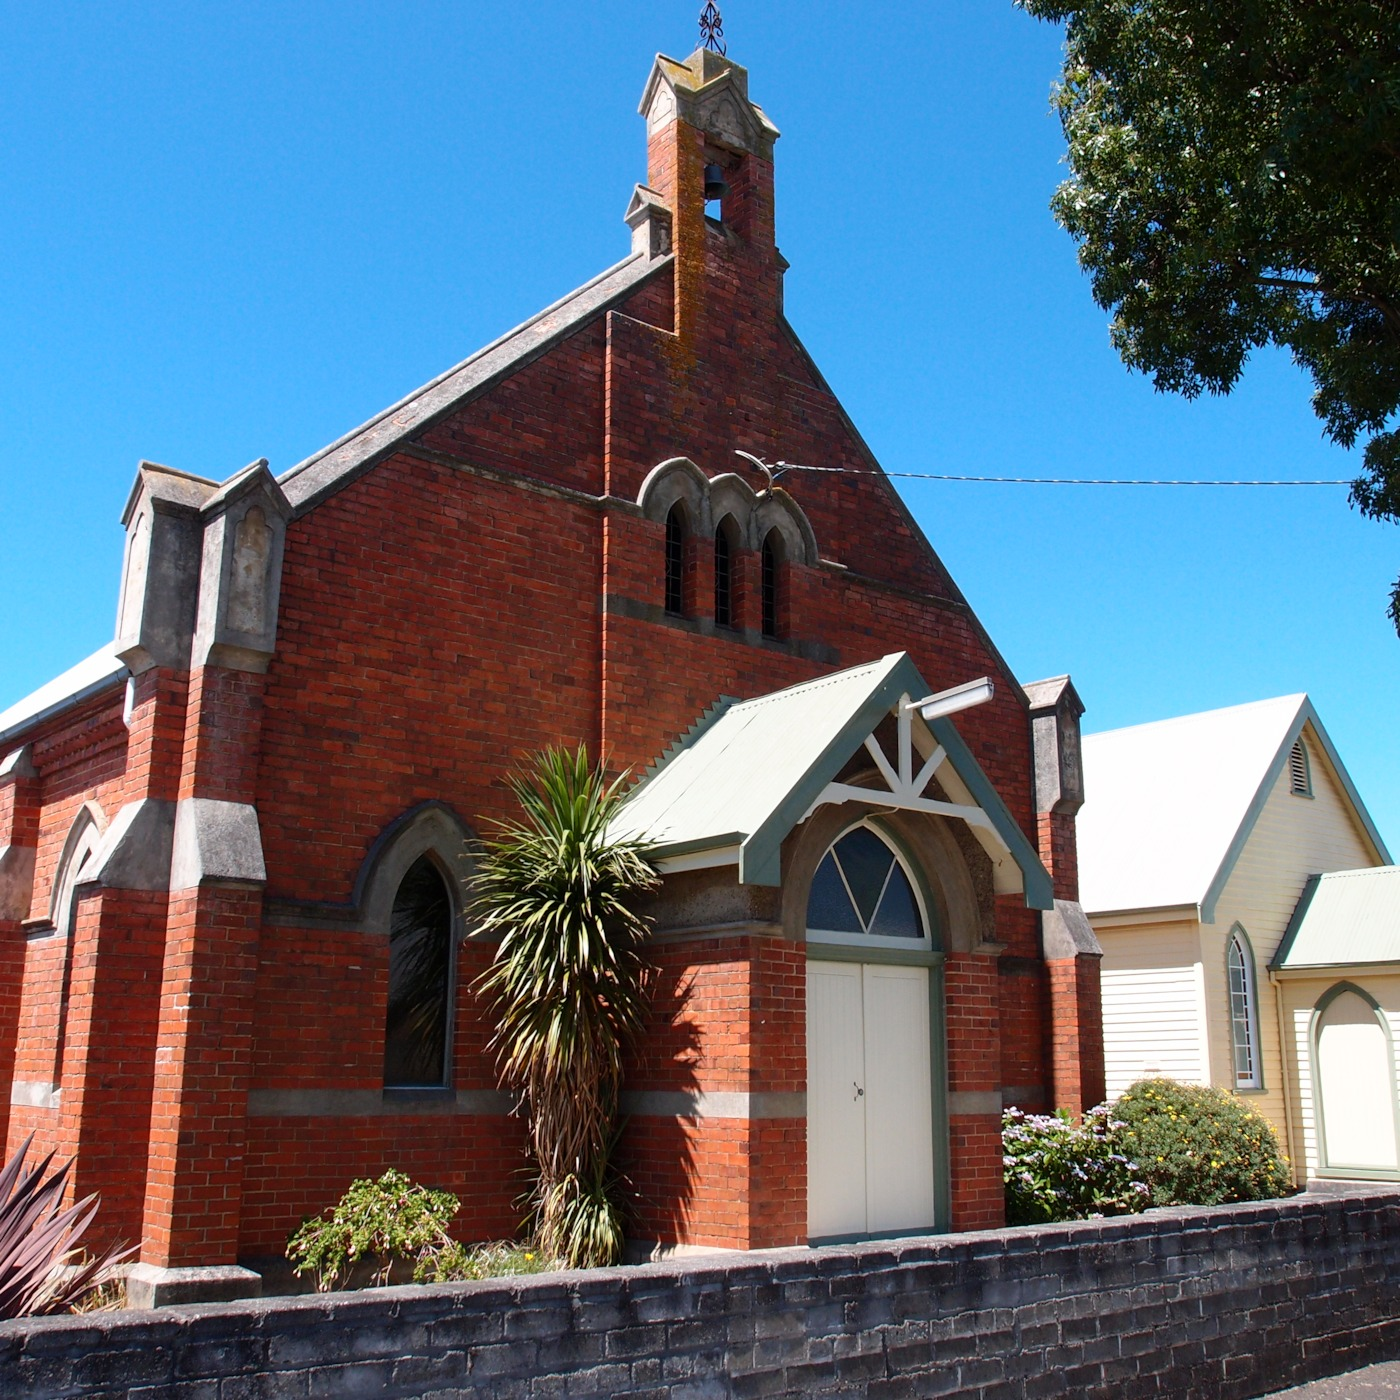 Ulverstone Presbyterian Church